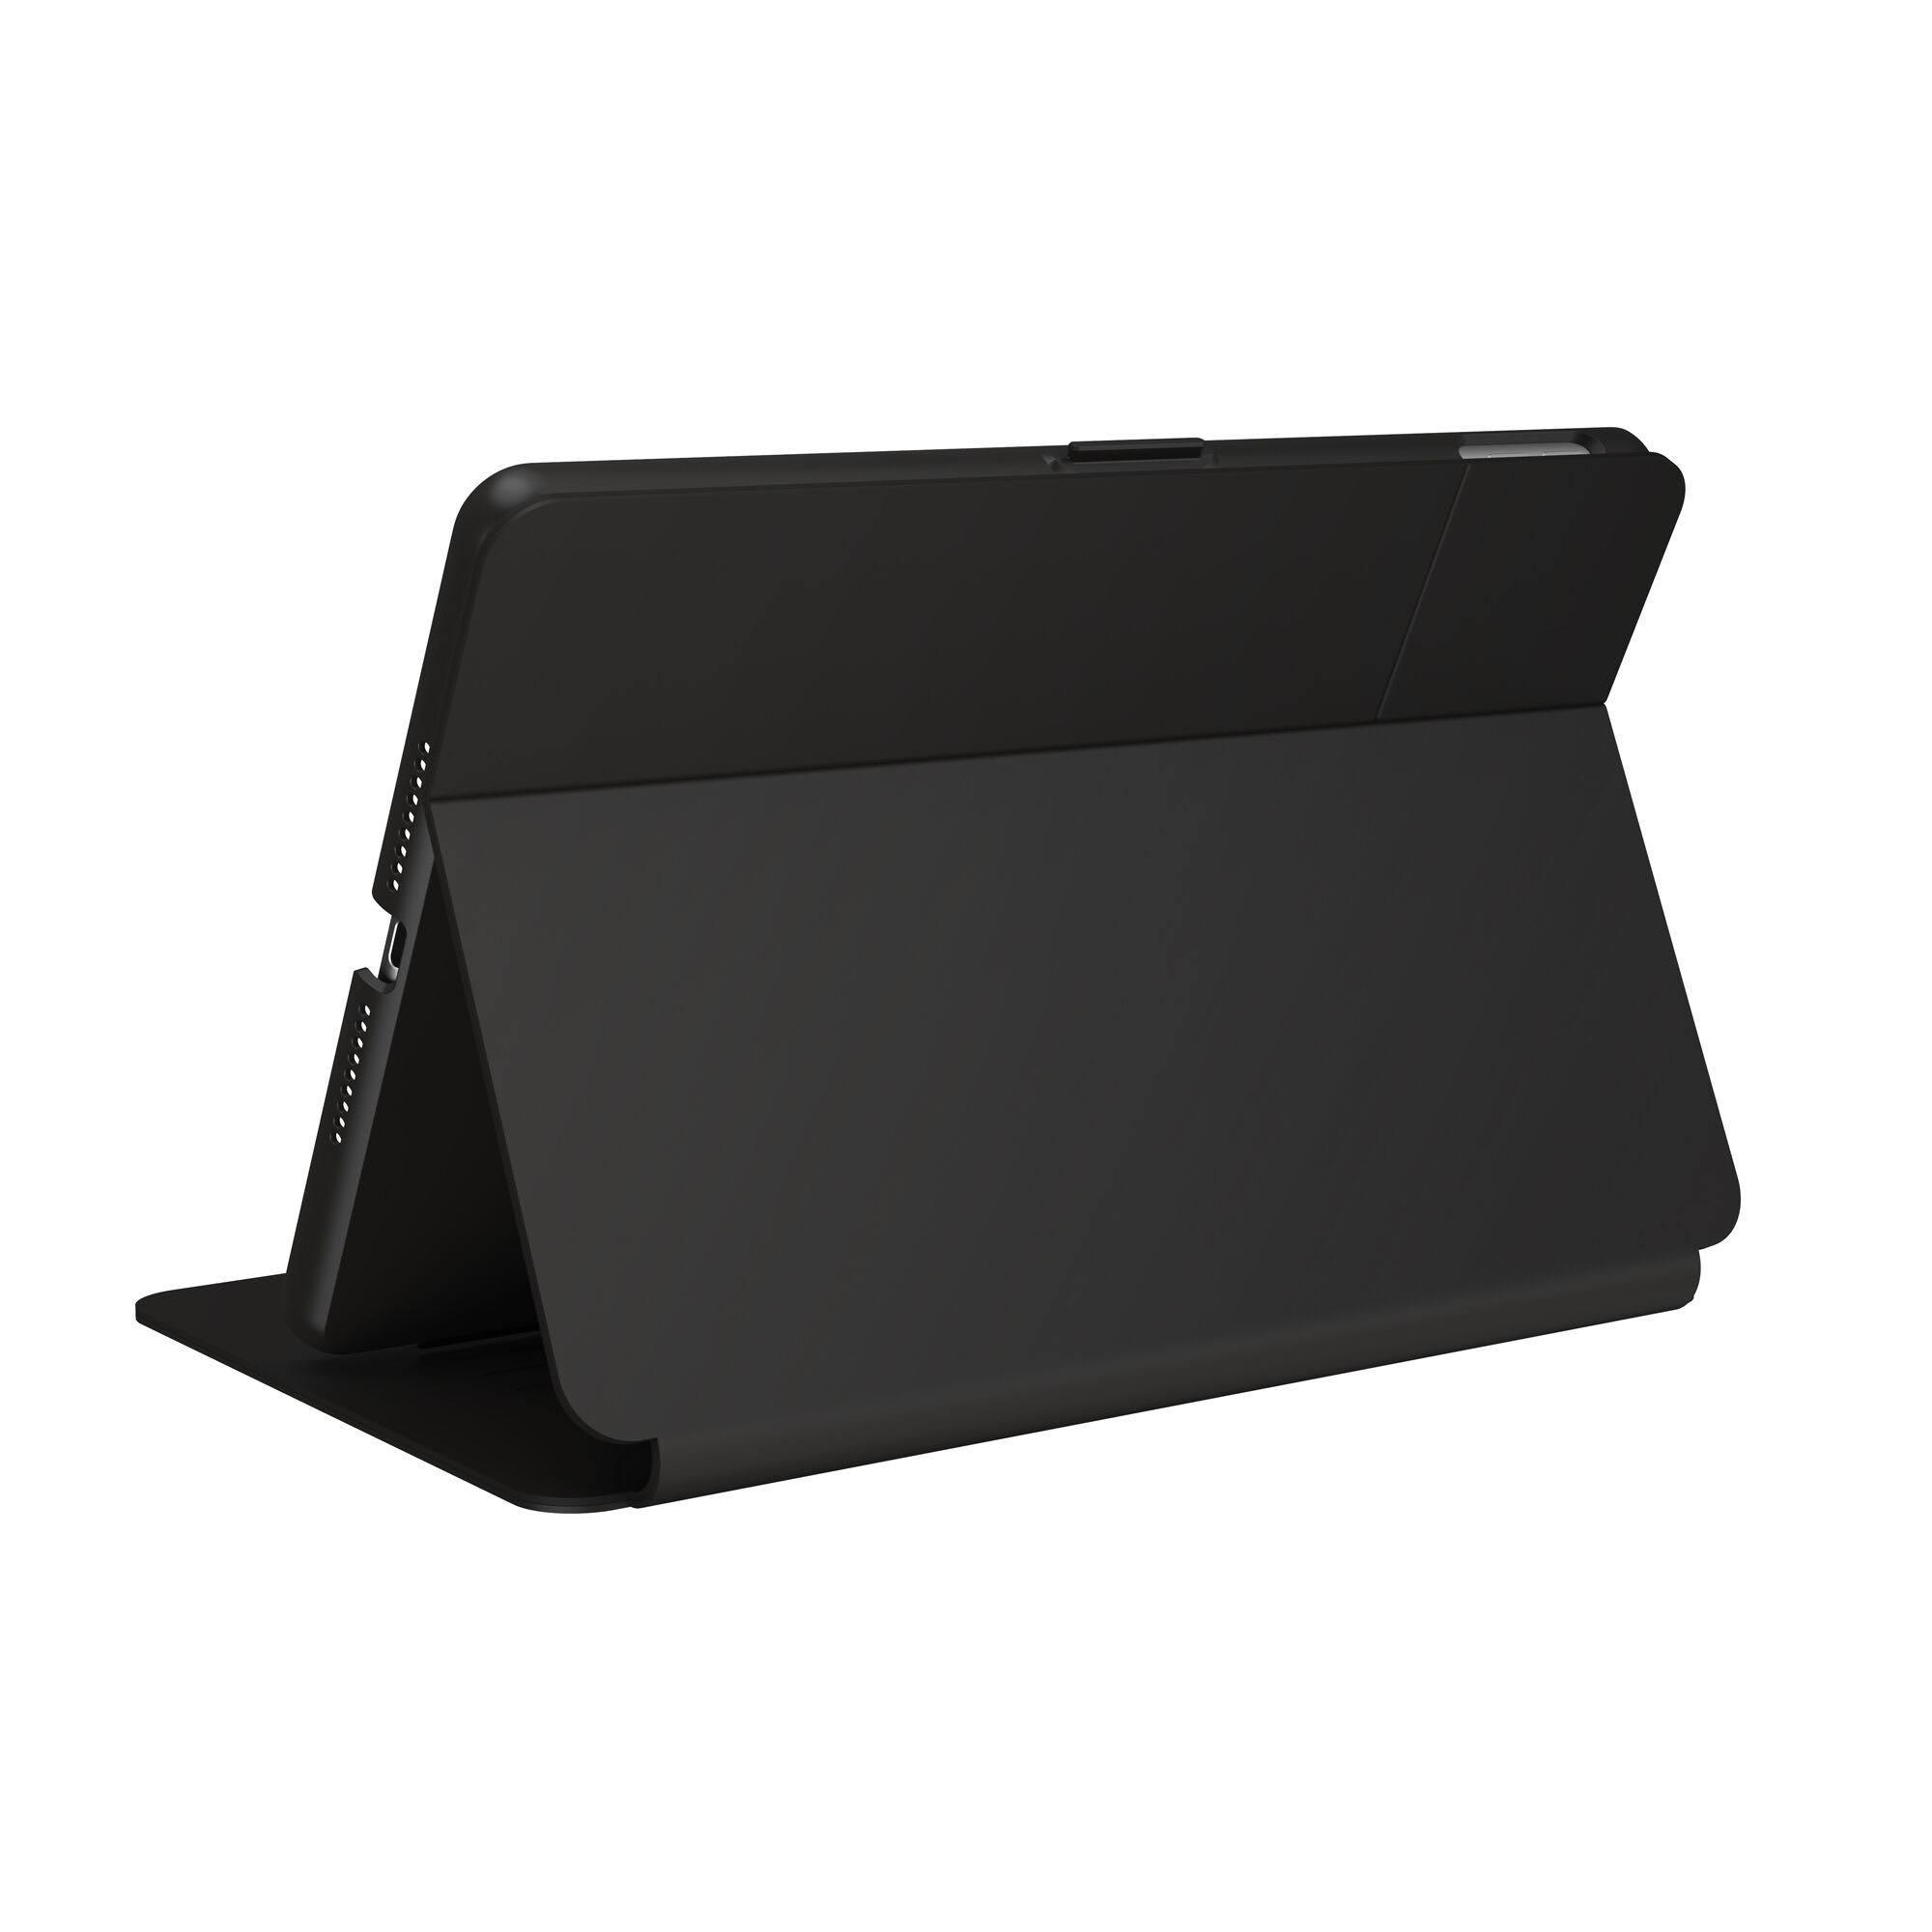 "Speck Balance Folio Case flip Cover for Apple 10.2-inch iPad 7 - 10.2"" - Black"